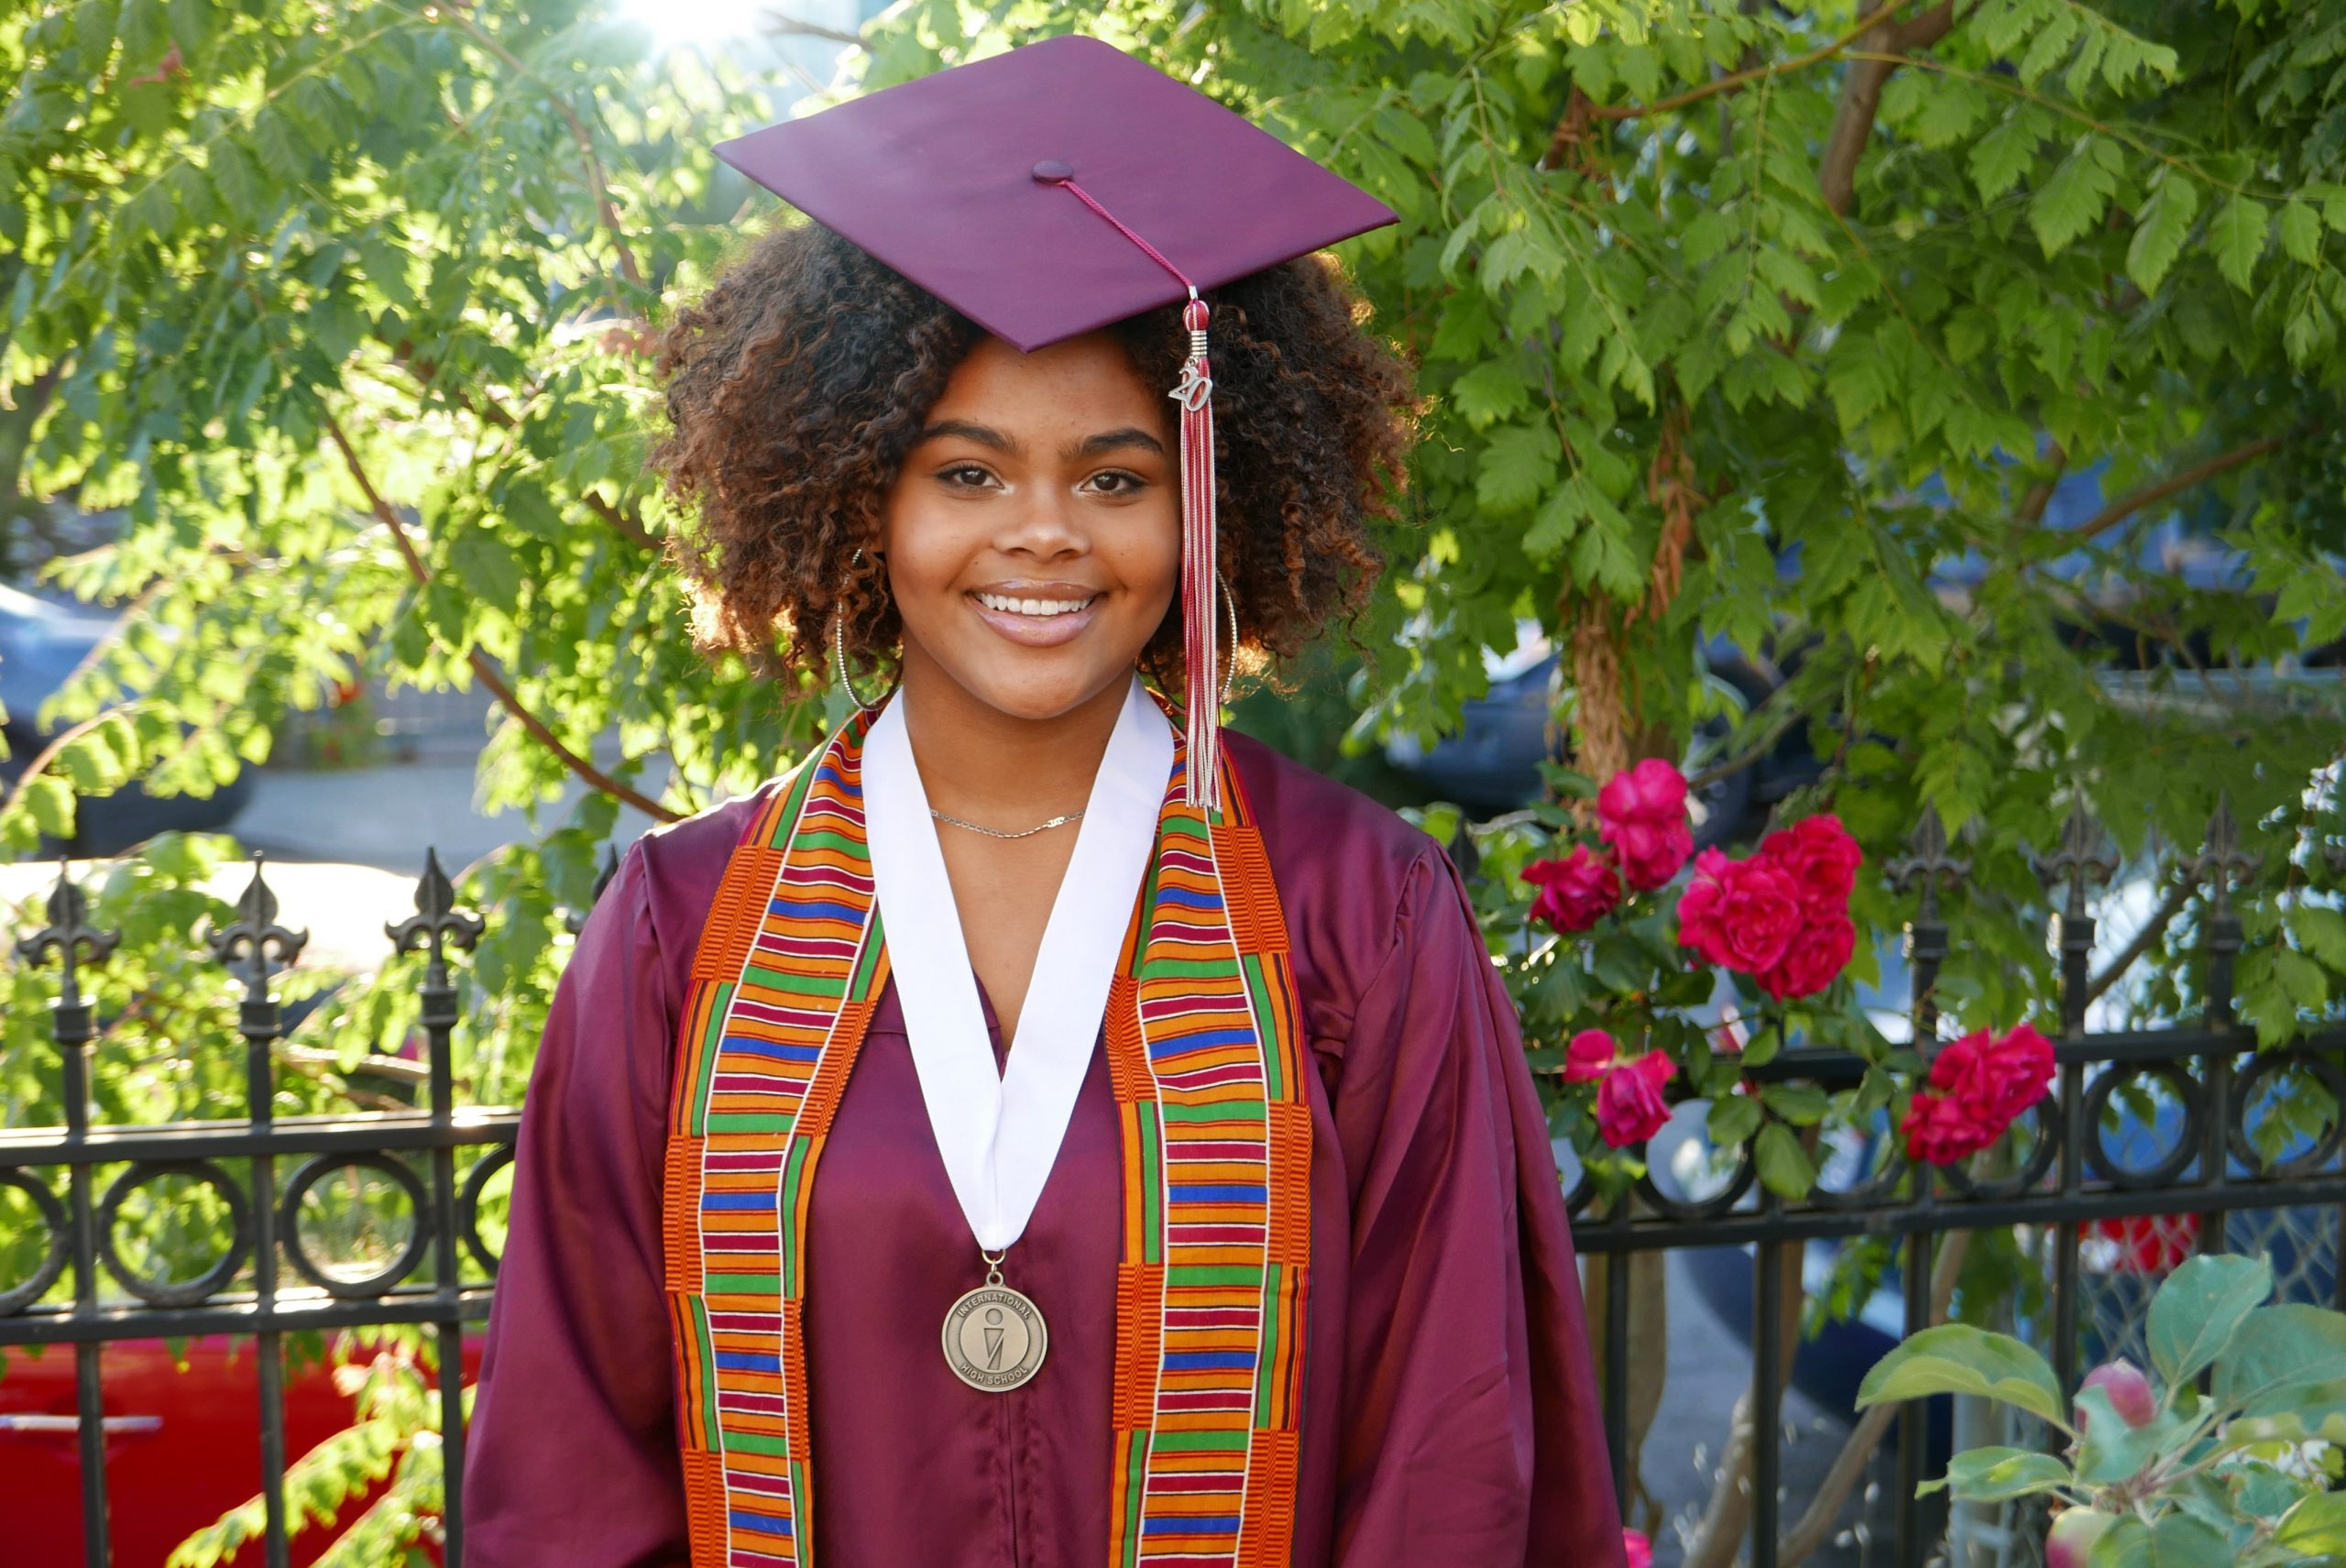 A smiling African American teenager wearing a maroon cap and gown smiles for the camera.